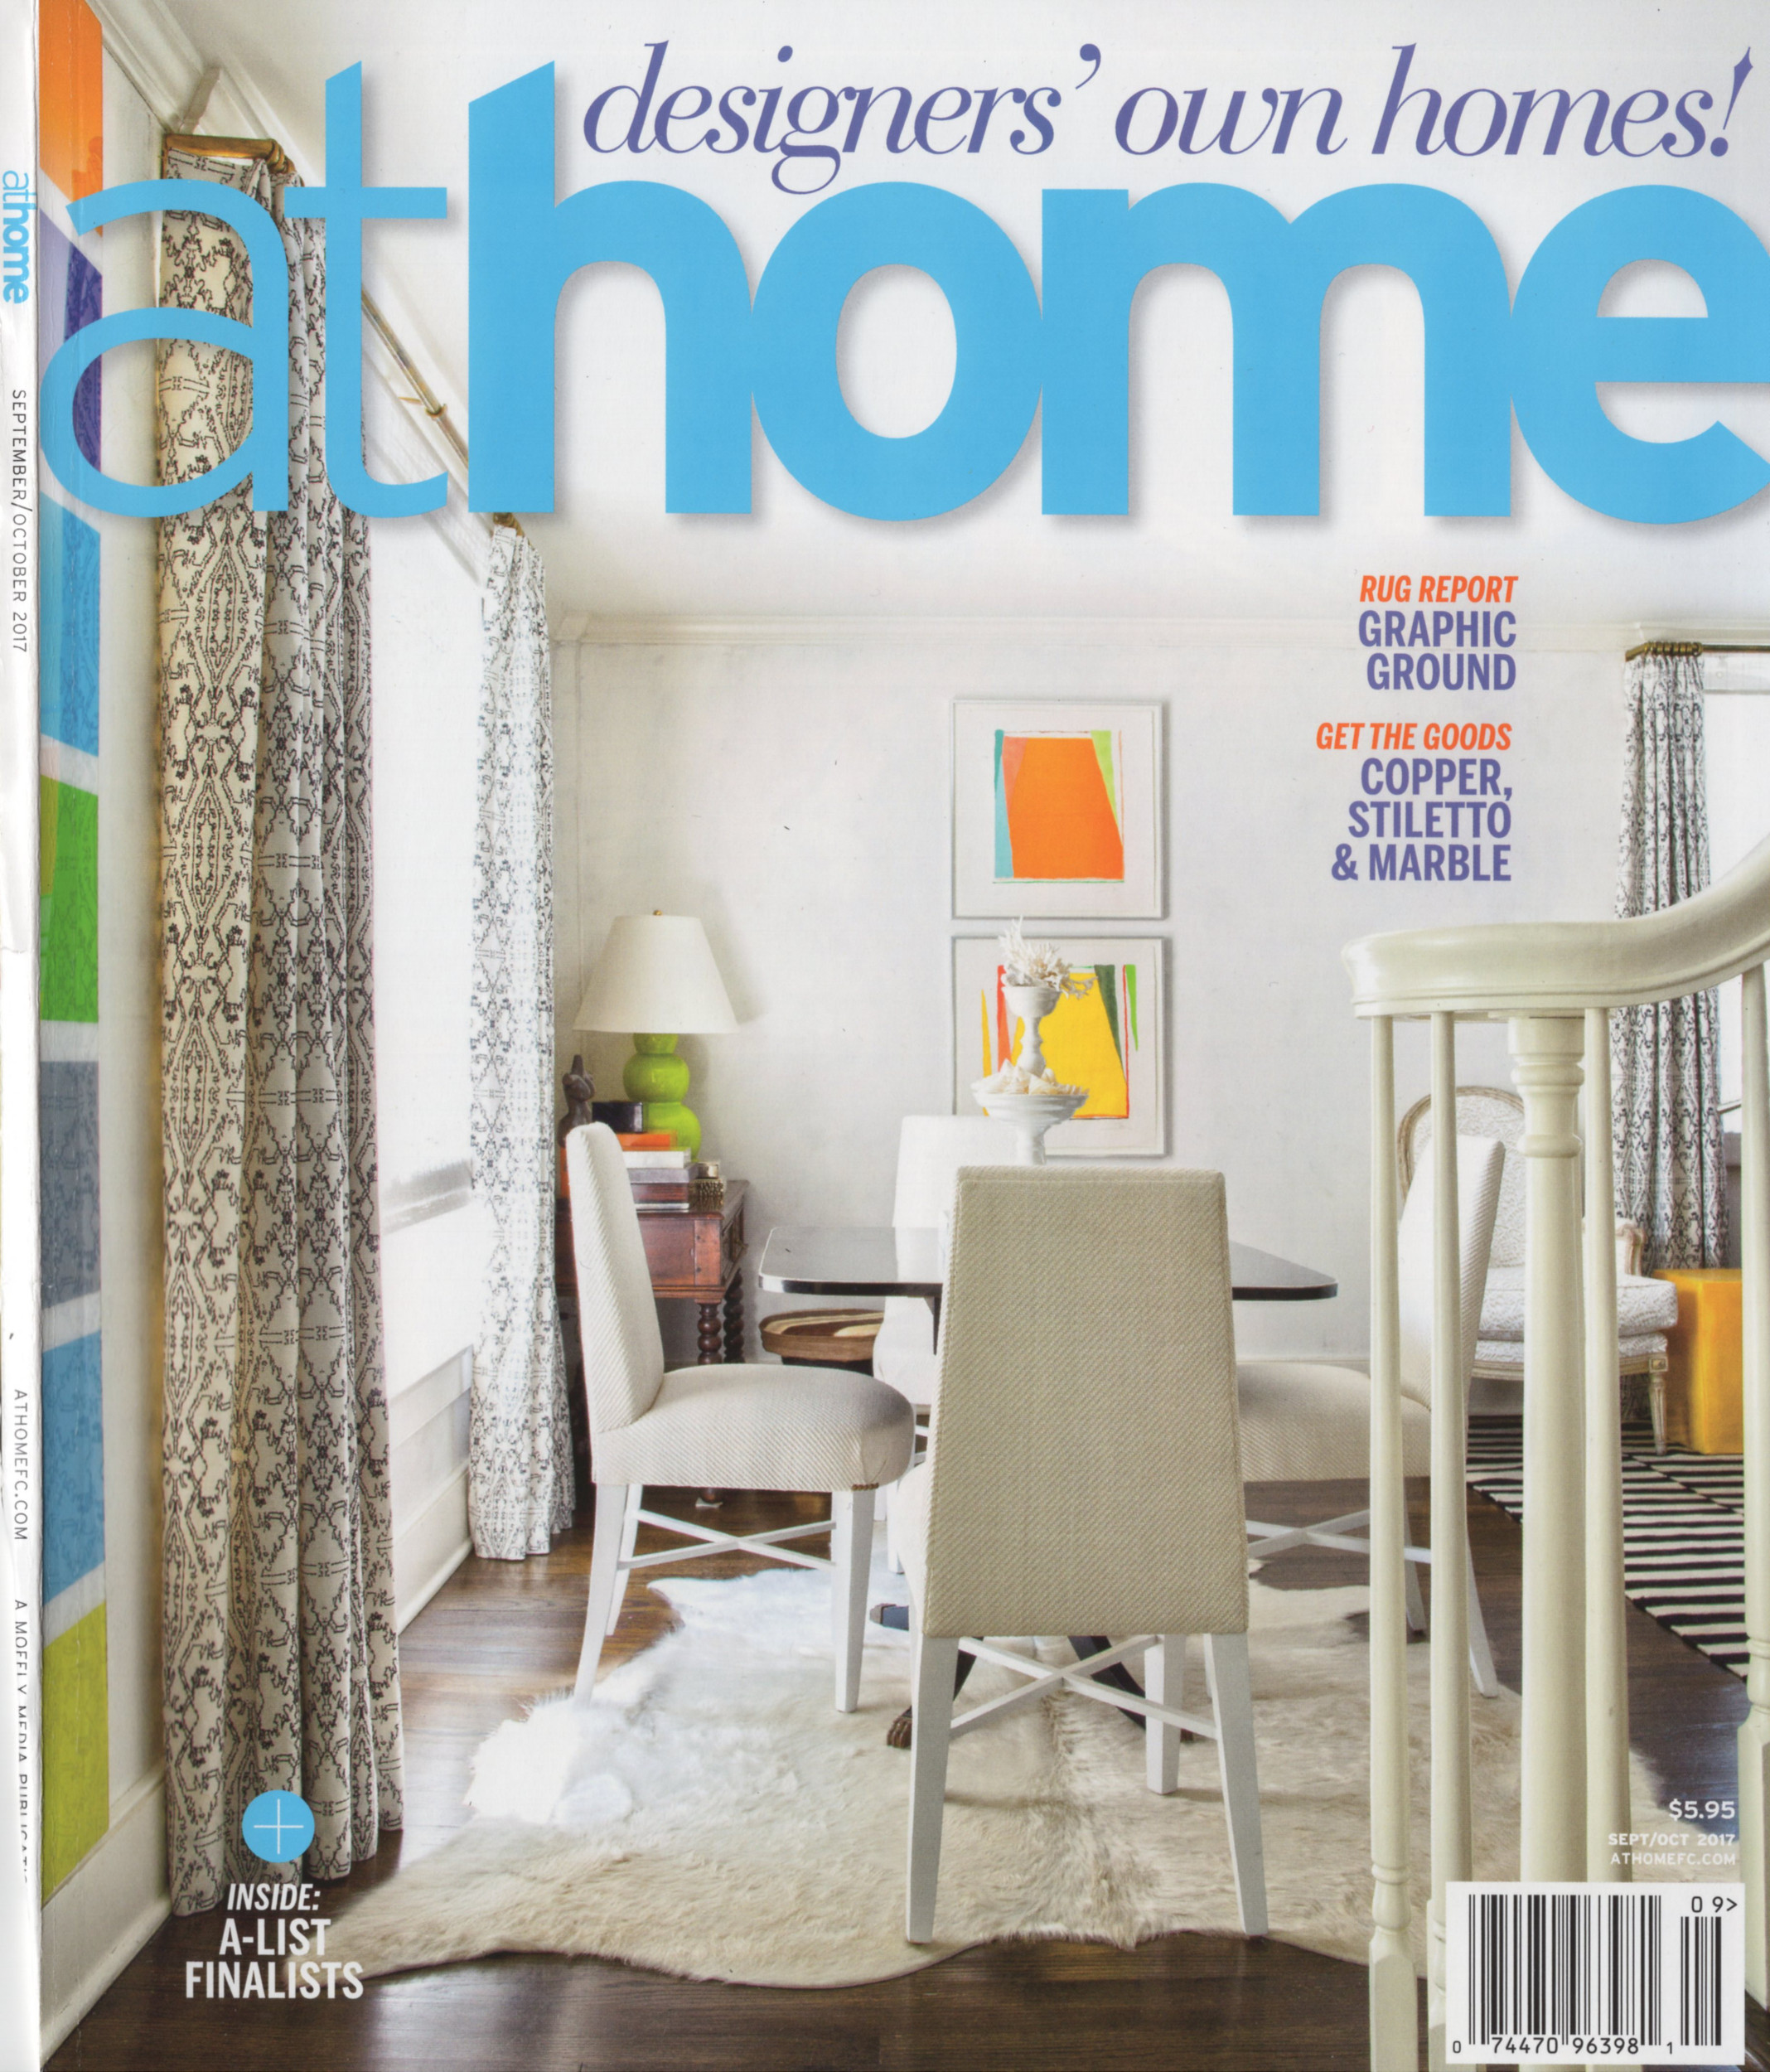 Caroline Kopp Interior Design AtHome Magazine Cover Rowayton CT Connecticut Interior Designers.JPG